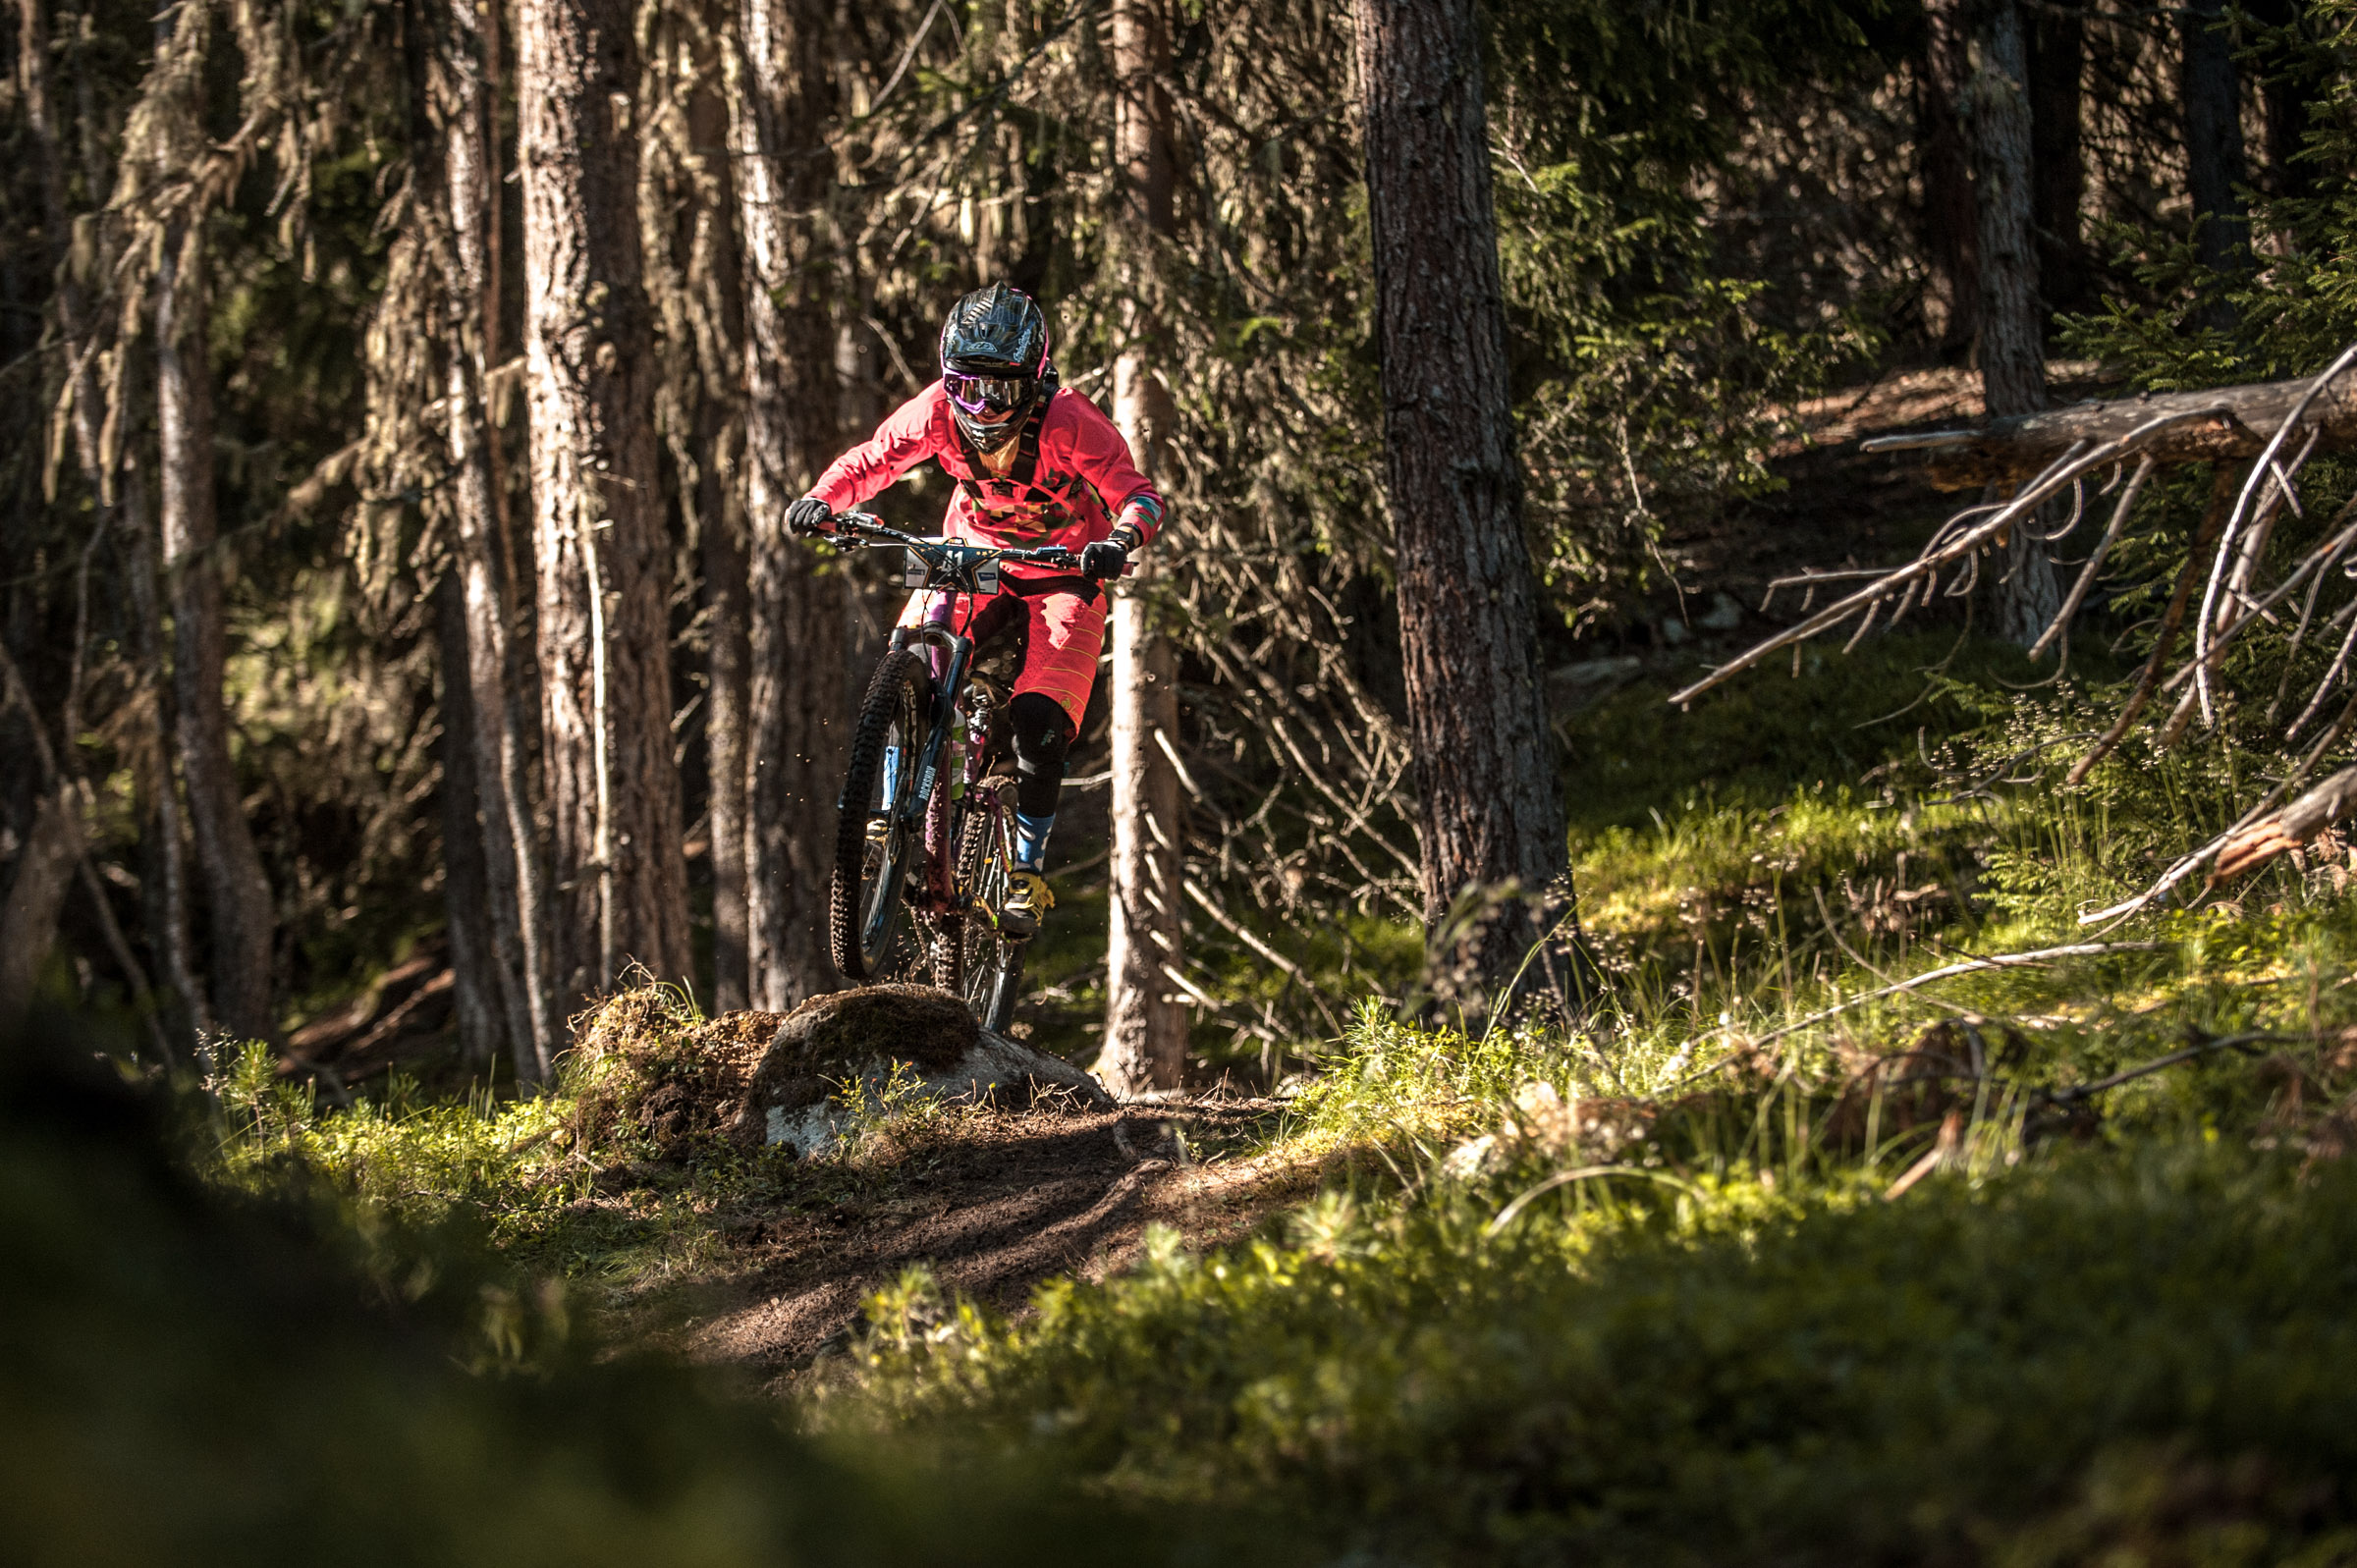 Sandra BÖRNER of Germany races down the stage No. 1 during the 3rd stop of the European Enduro Series at Reschenpass, Austria, on July 26, 2015. Free image for editorial usage only: Photo by Andreas Vigl